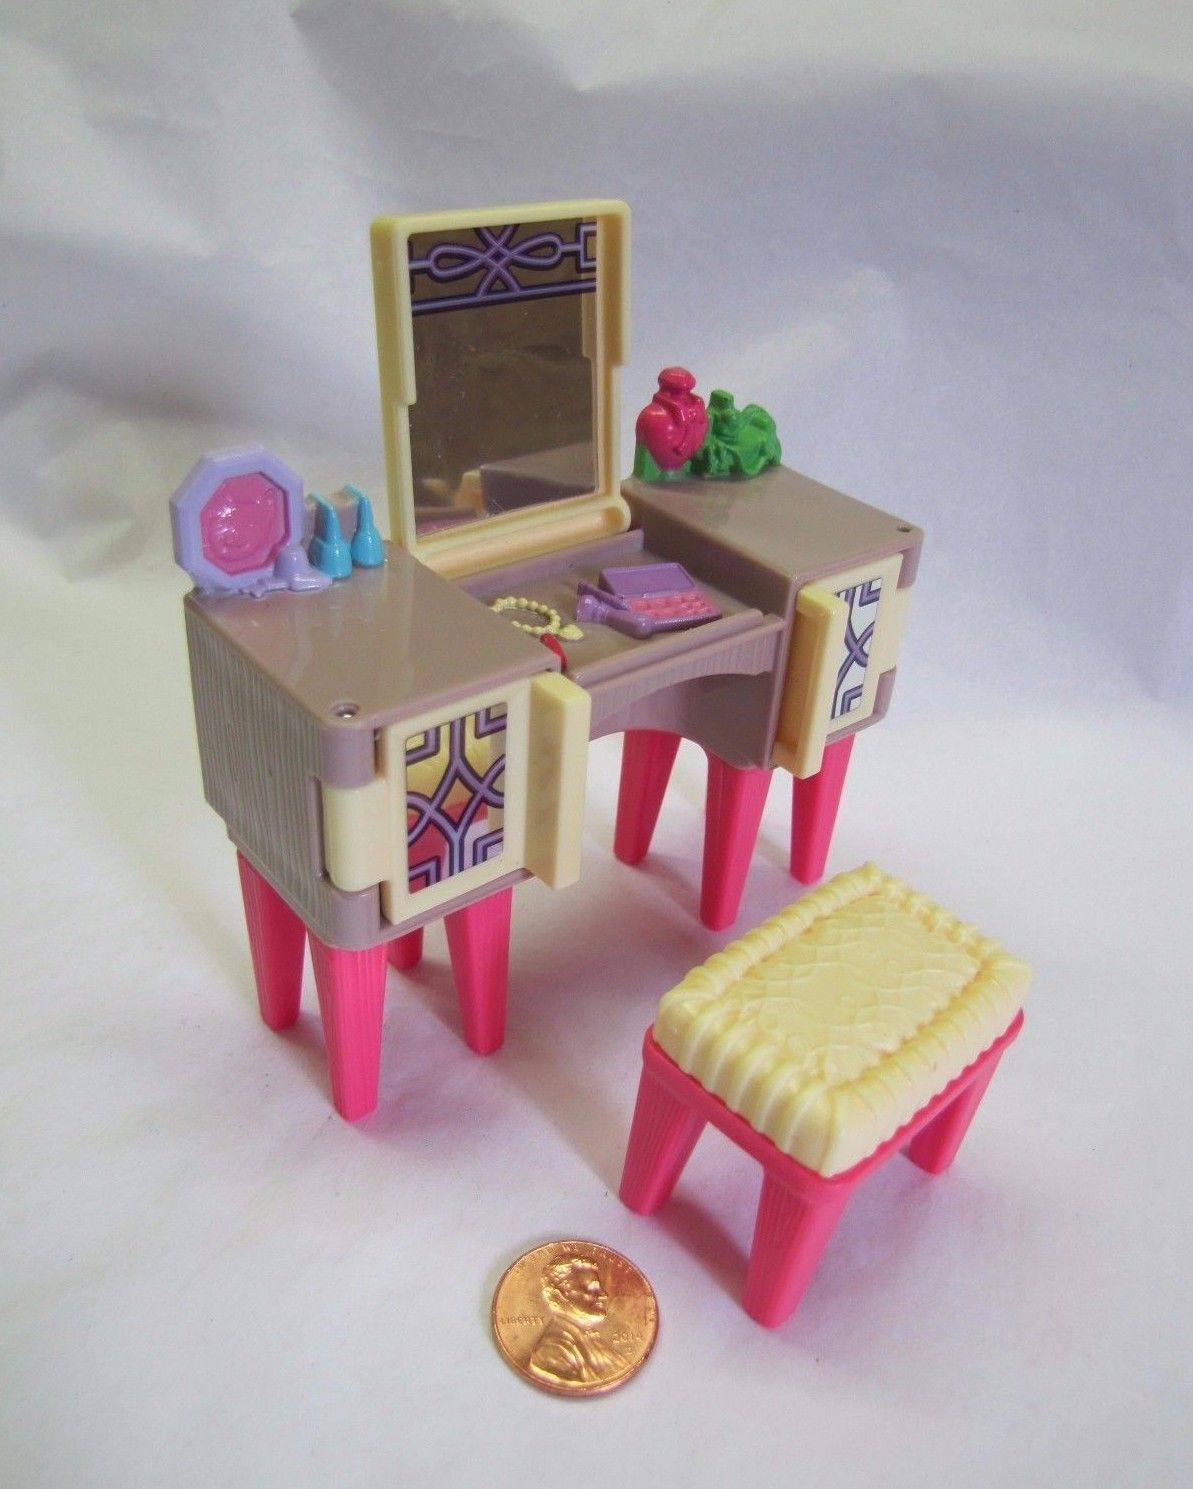 Fisher price doll house furniture - New Fisher Price Loving Family Dollhouse Parents Mirrored Bedroom Vanity Stool